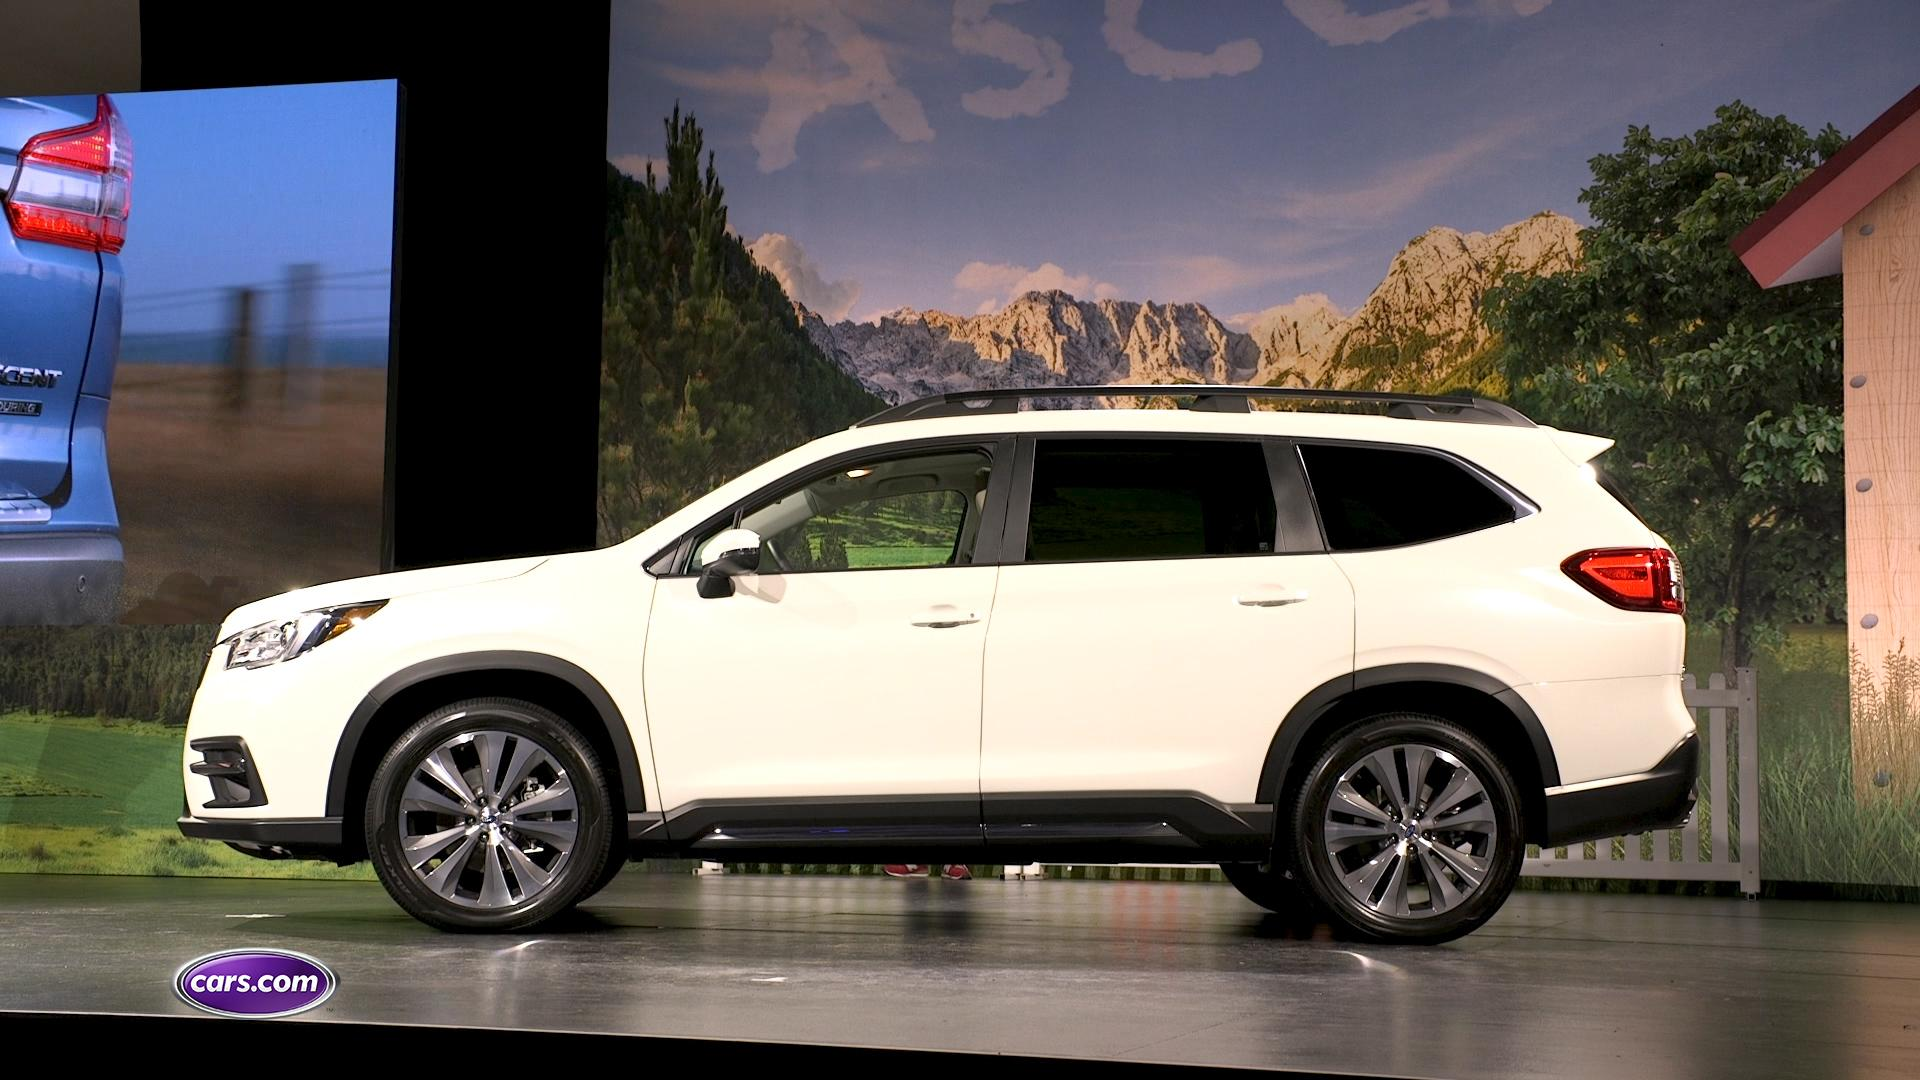 Video: 2019 Subaru Ascent — Cars.com